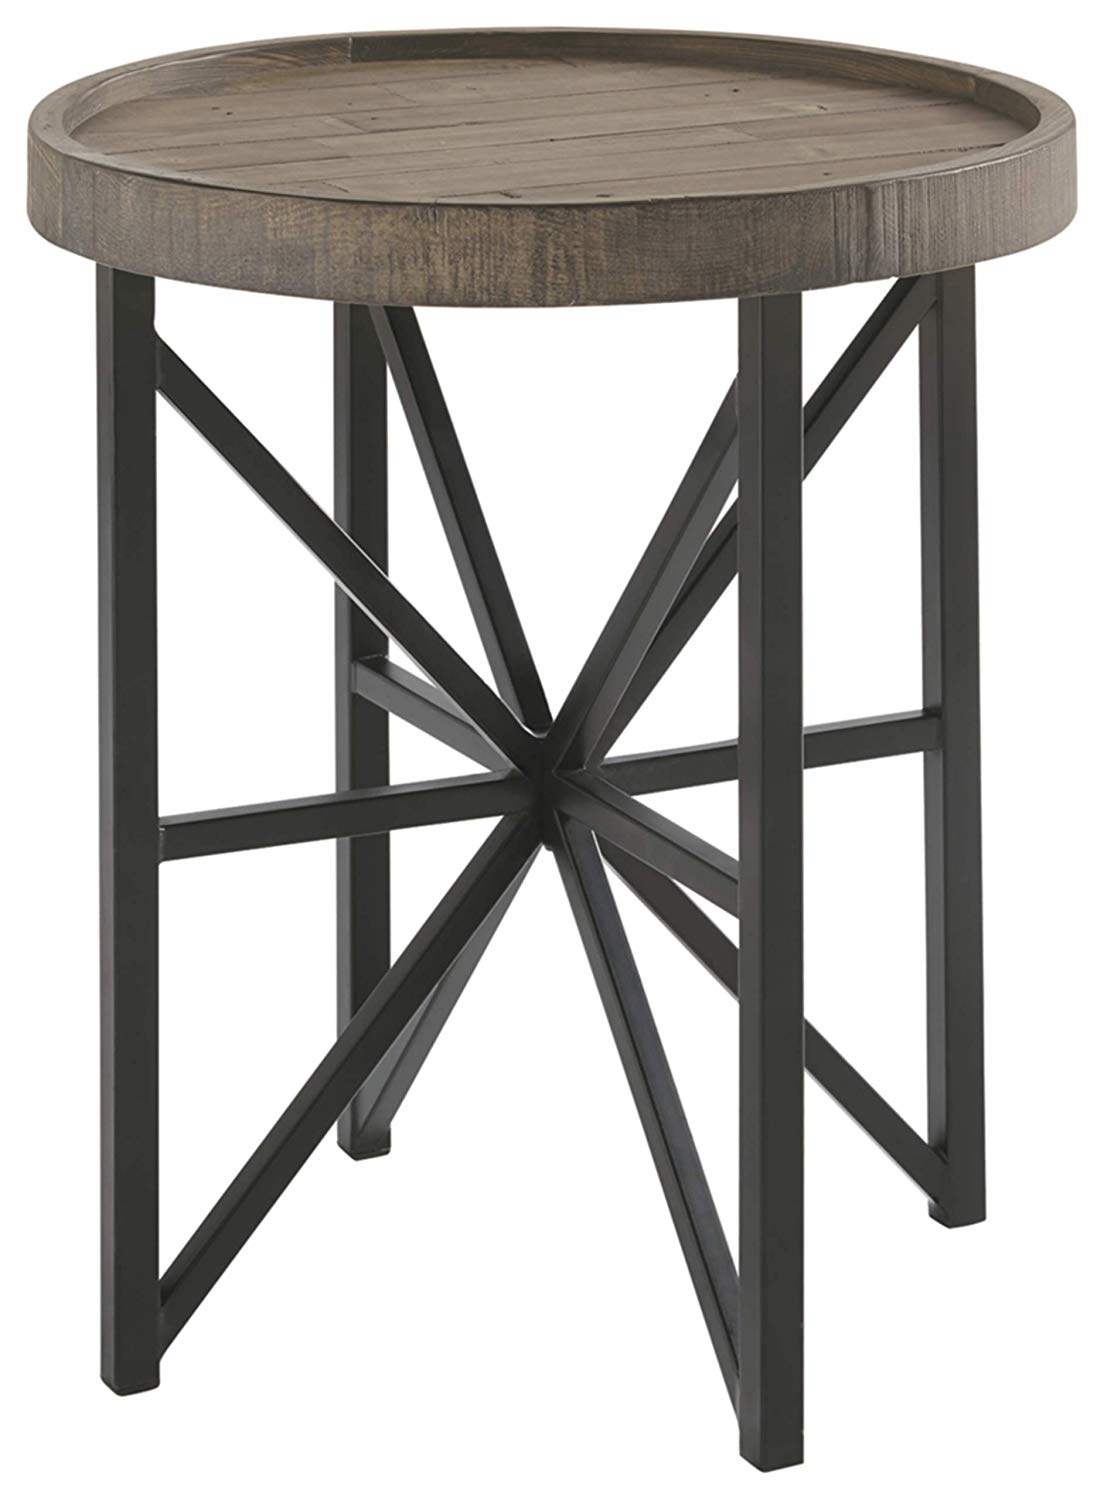 ashley furniture signature design cazentine distressed round end table contemporary rustic top grayish brown black kitchen dining homesense wicker baskets lamp sectional seating